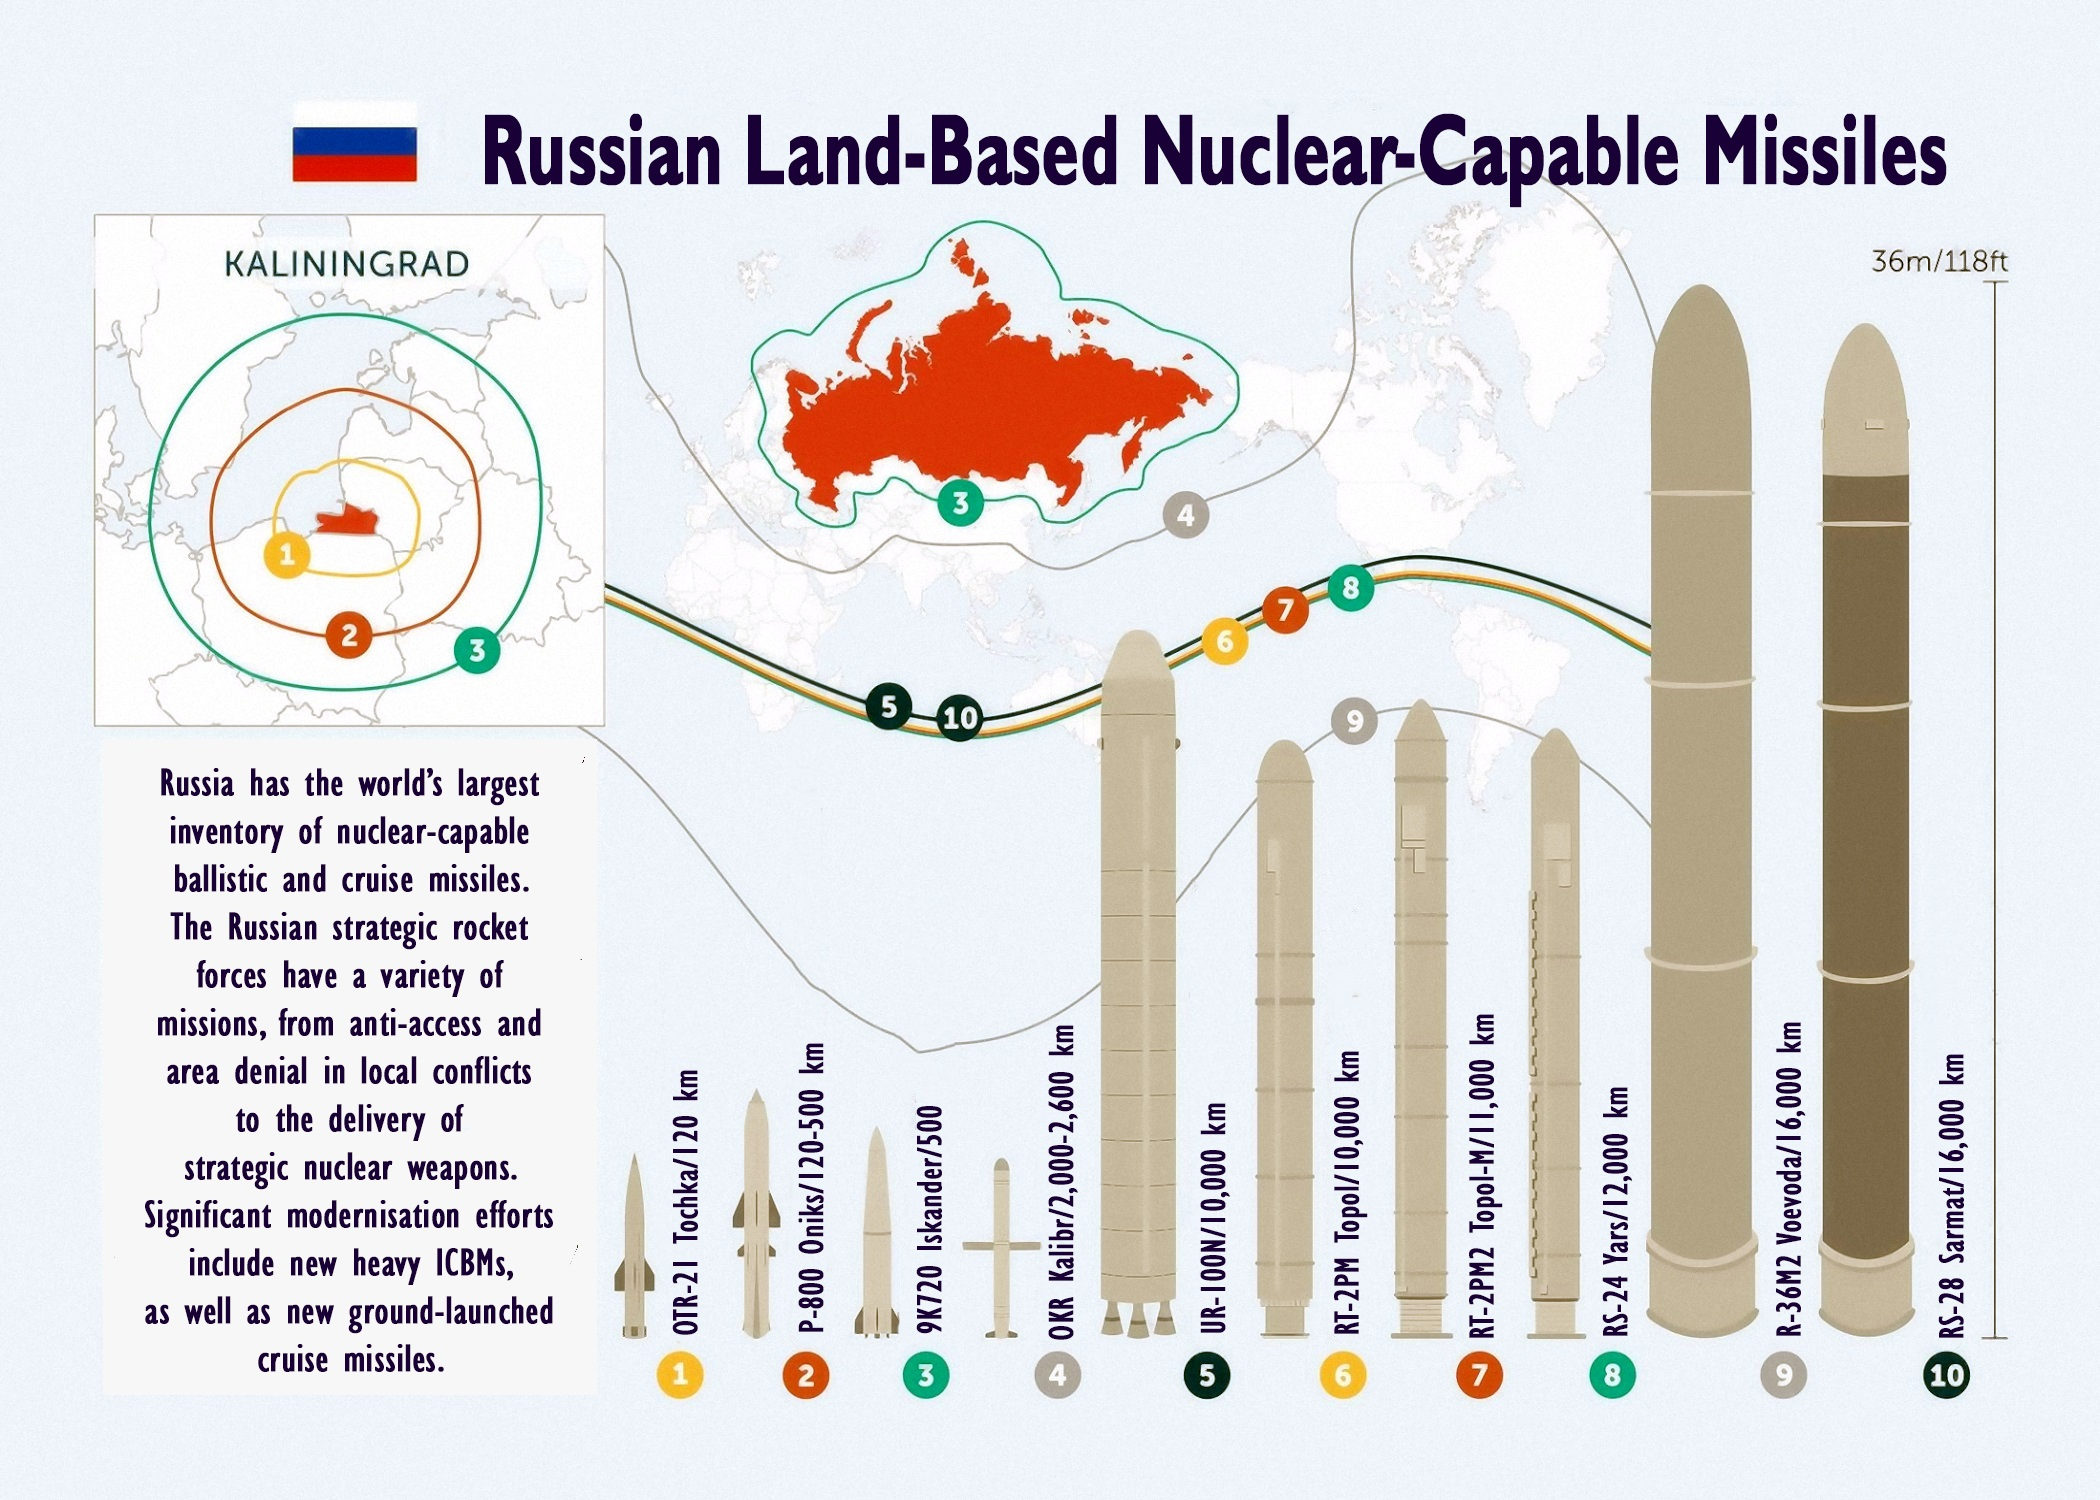 And where in Russia are the missile forces in which cities there are parts of the river